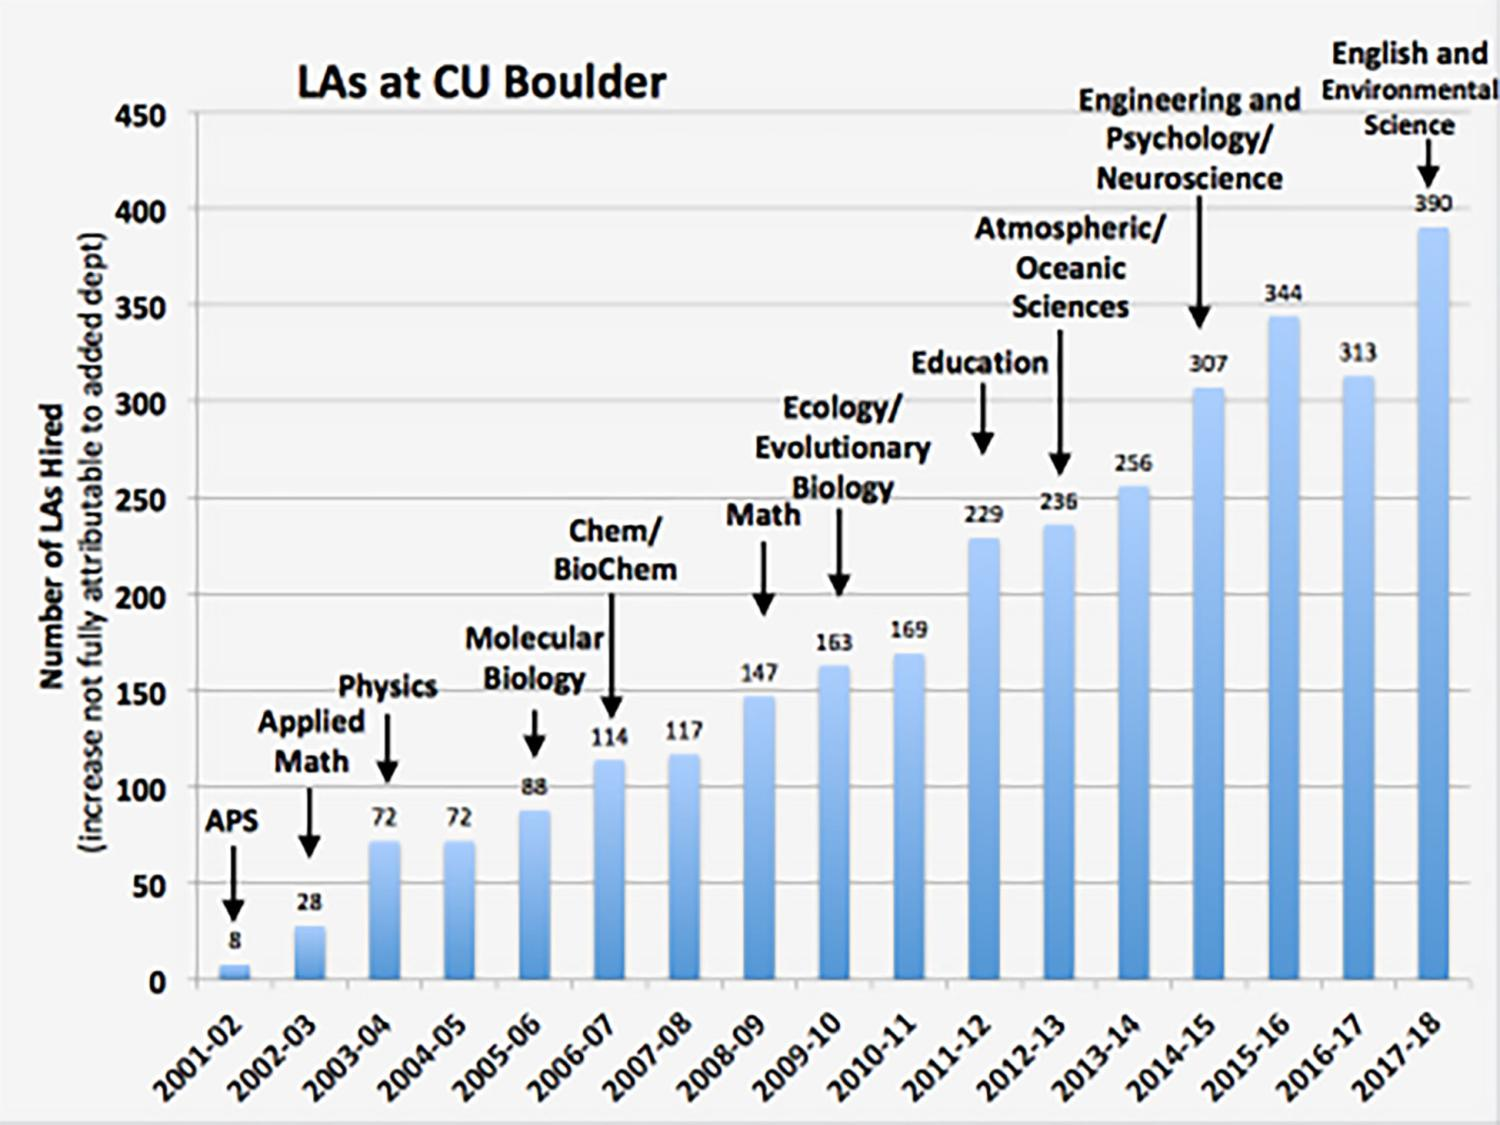 The graph shows the number of LAs hired at CU Boulder since the program began in 2001, by Astrophysicist Dick McCray. Each semester more LAs are used in departments already using LAs and new departments begin to use LAs.